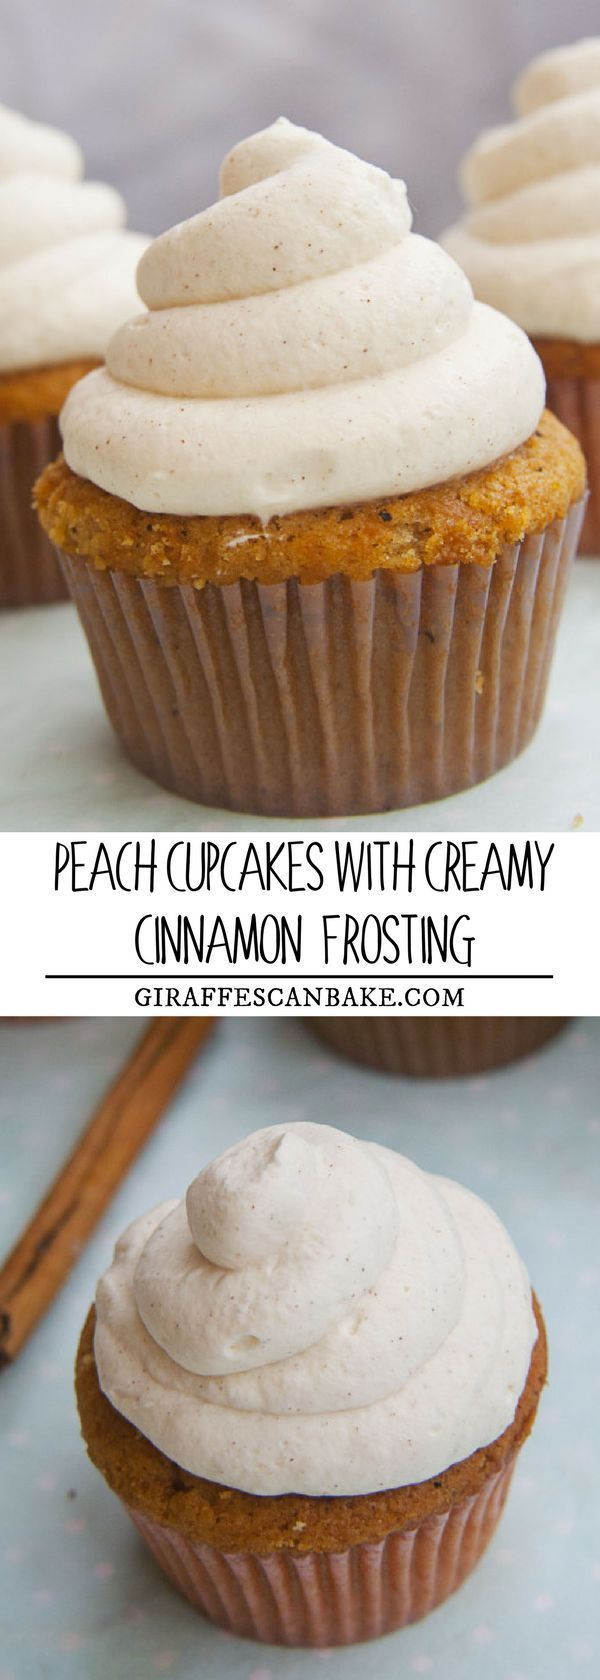 Moist peach cupcakes with a spiced peach filling and a creamy cinnamon frosting - the perfect cupcake for those who usually steer clear of cupcakes due to the sickly sweet frosting! #cupcakes #dessert